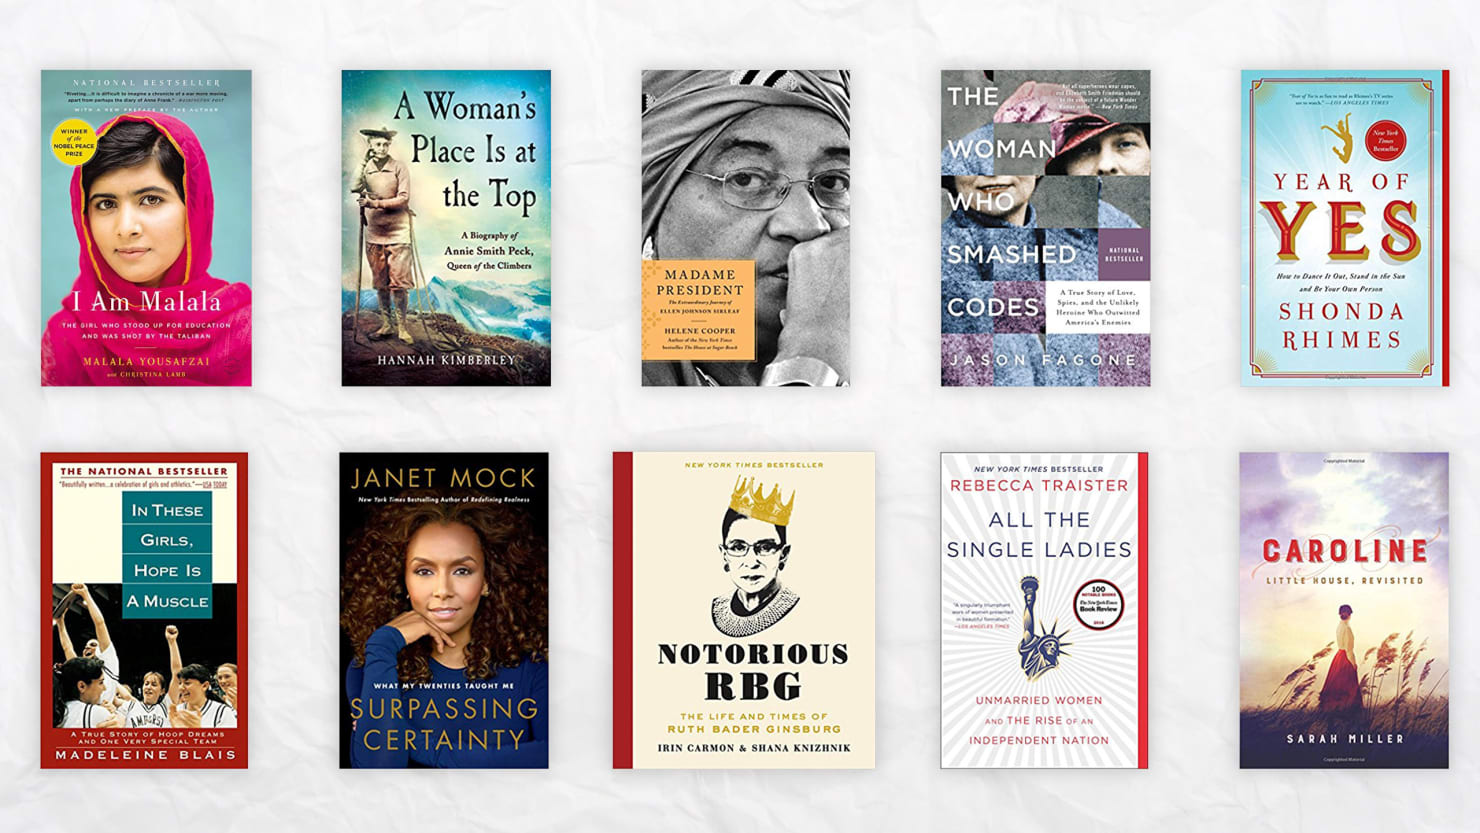 images 10 New Books to Add to Your Reading List in 2019